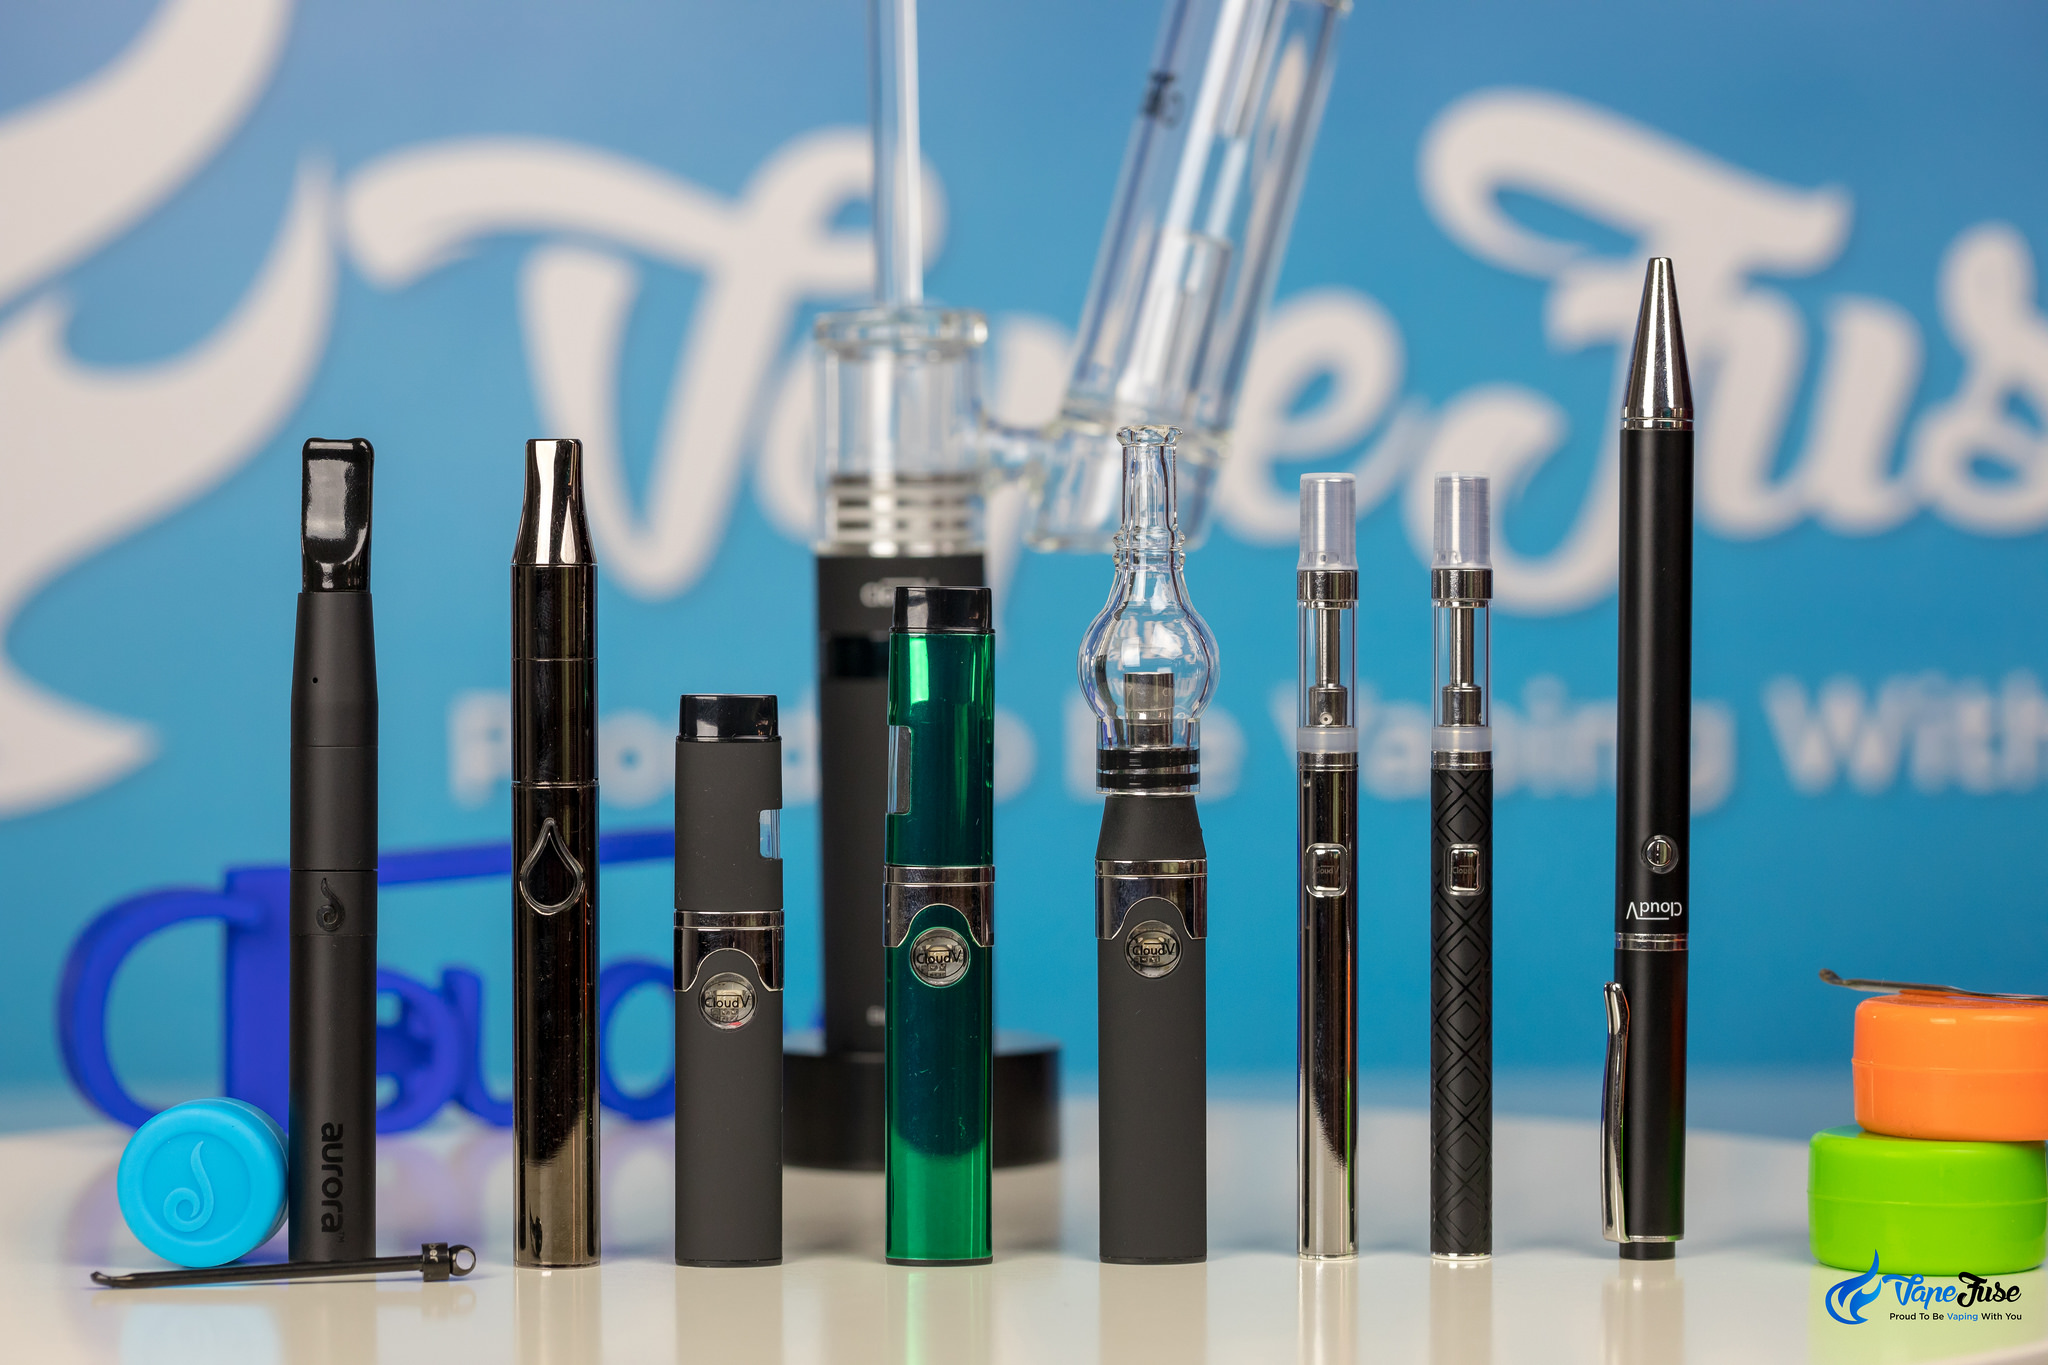 wax / concentrate vaporizers